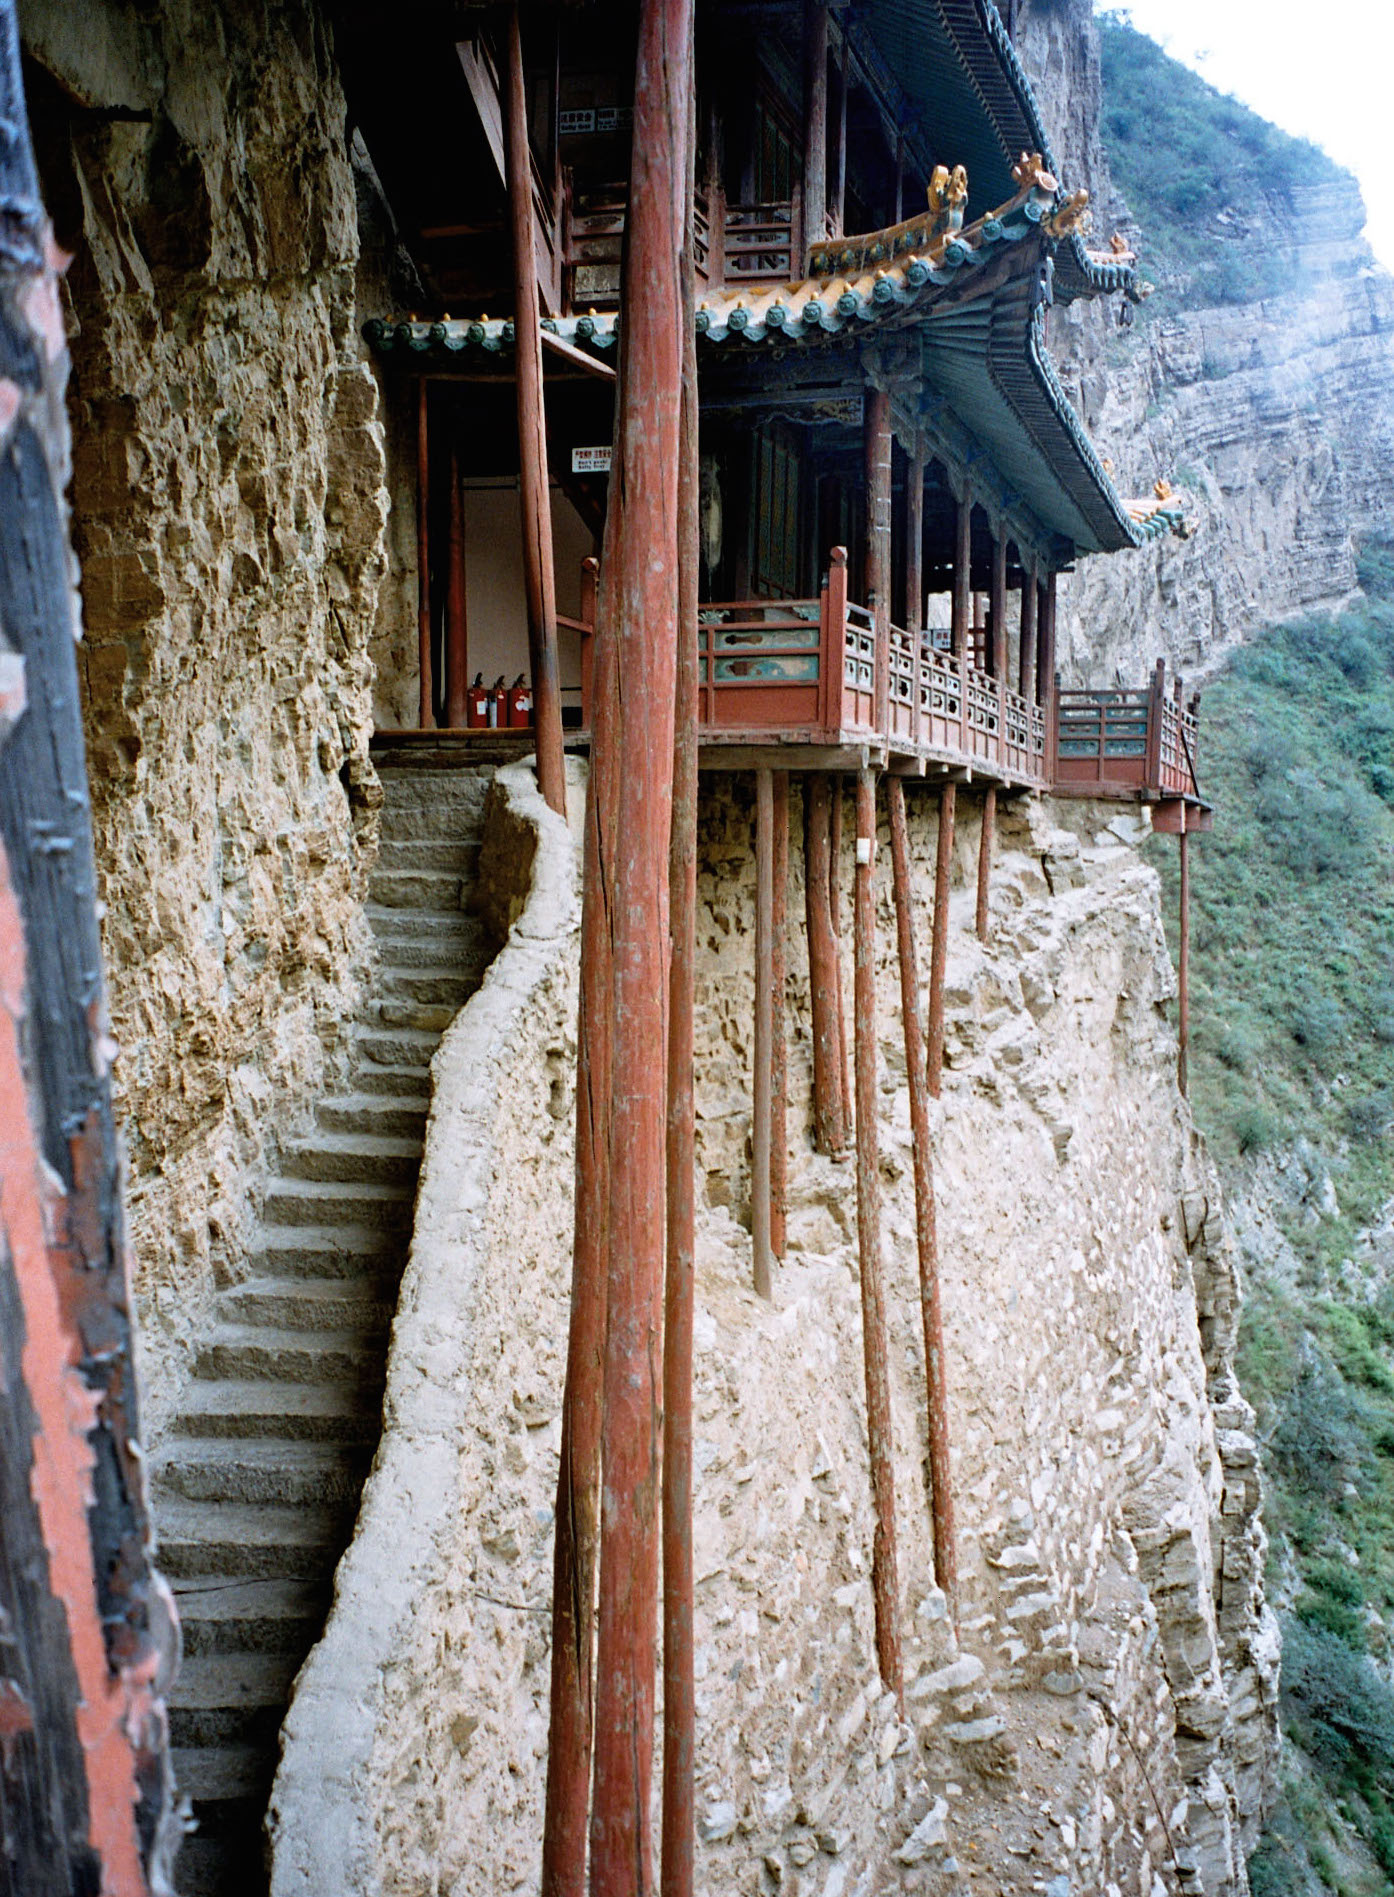 Stairs to cliff temple